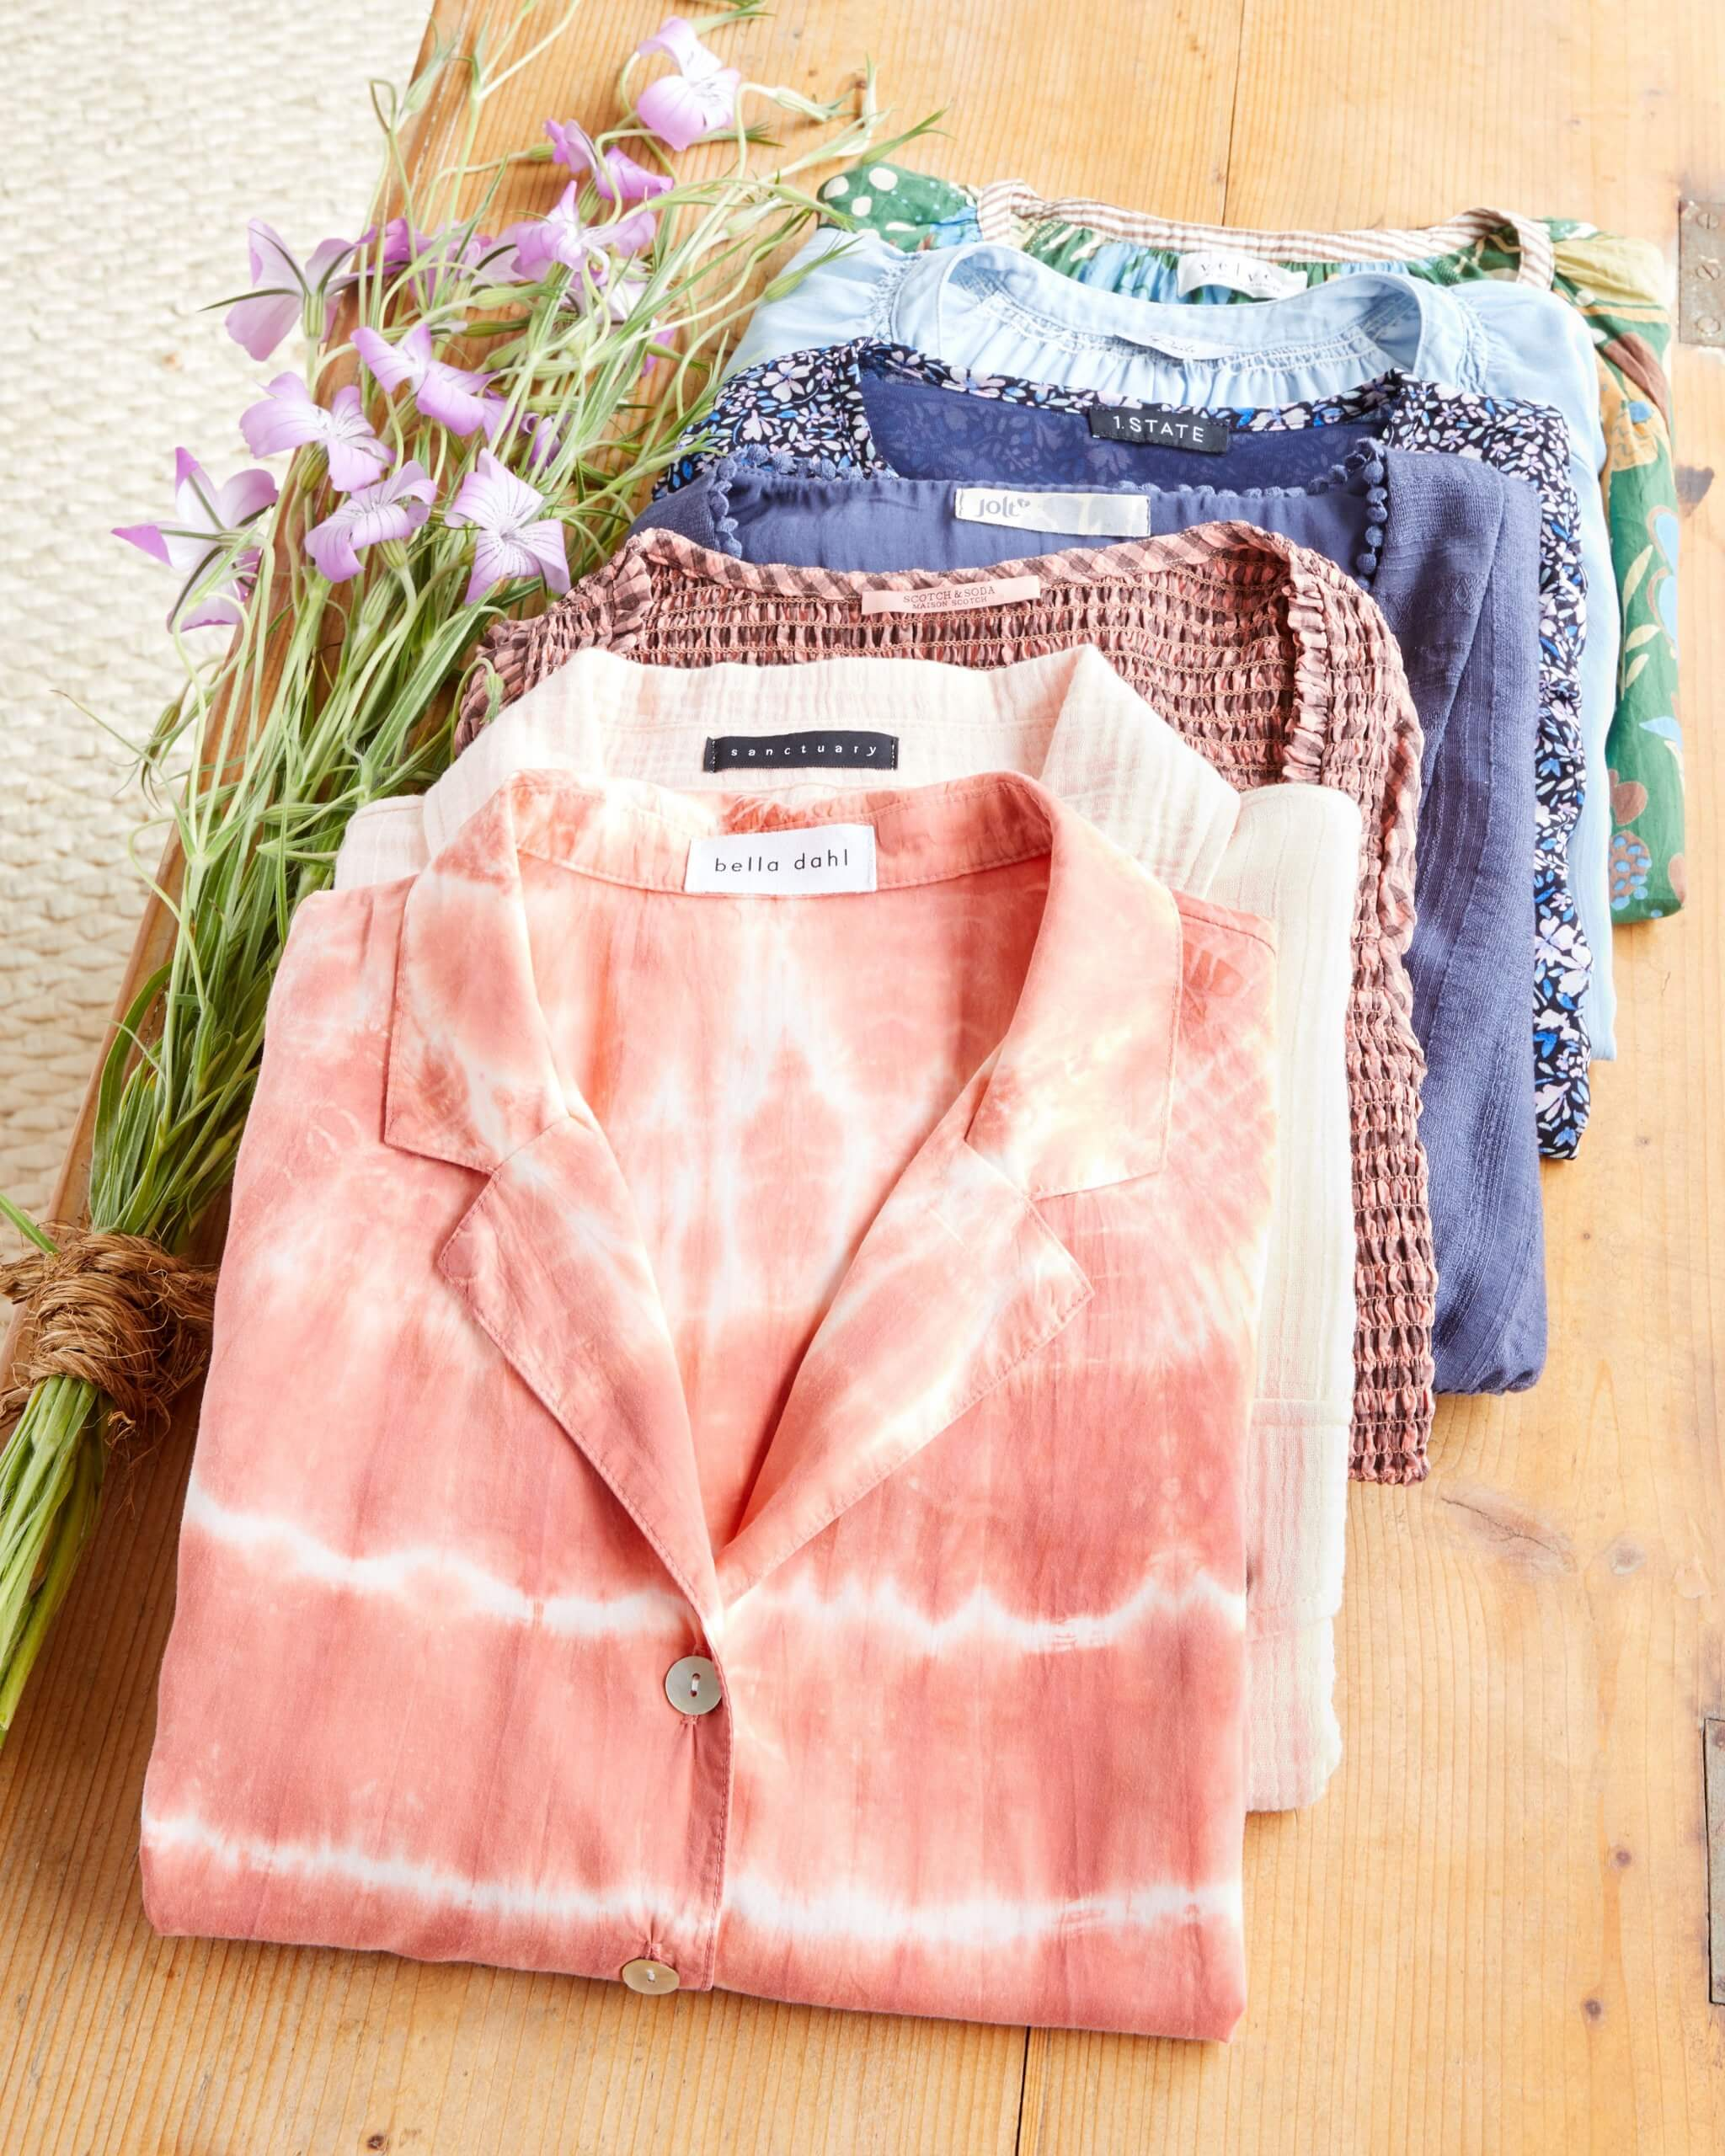 Stitch Fix Women's outfit laydown featuring folded shirts in a pile in pink, white, purple, blue and green tones on a wooden table.